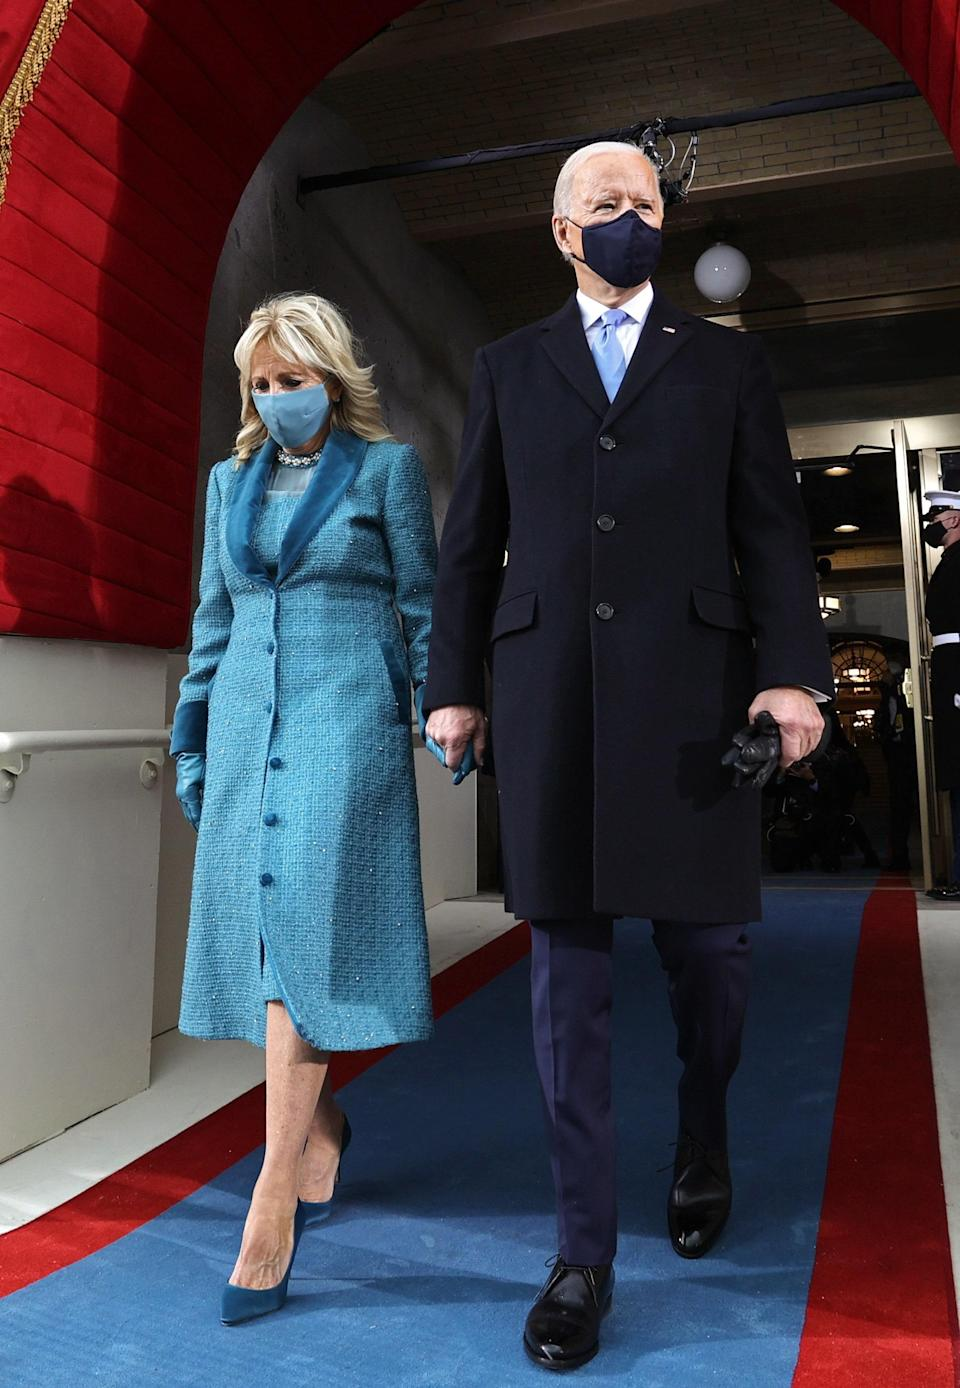 Dr. Jill Biden and now First Lady of the United States always stuns, but this aquamarine Markarian moment took it to the next level.